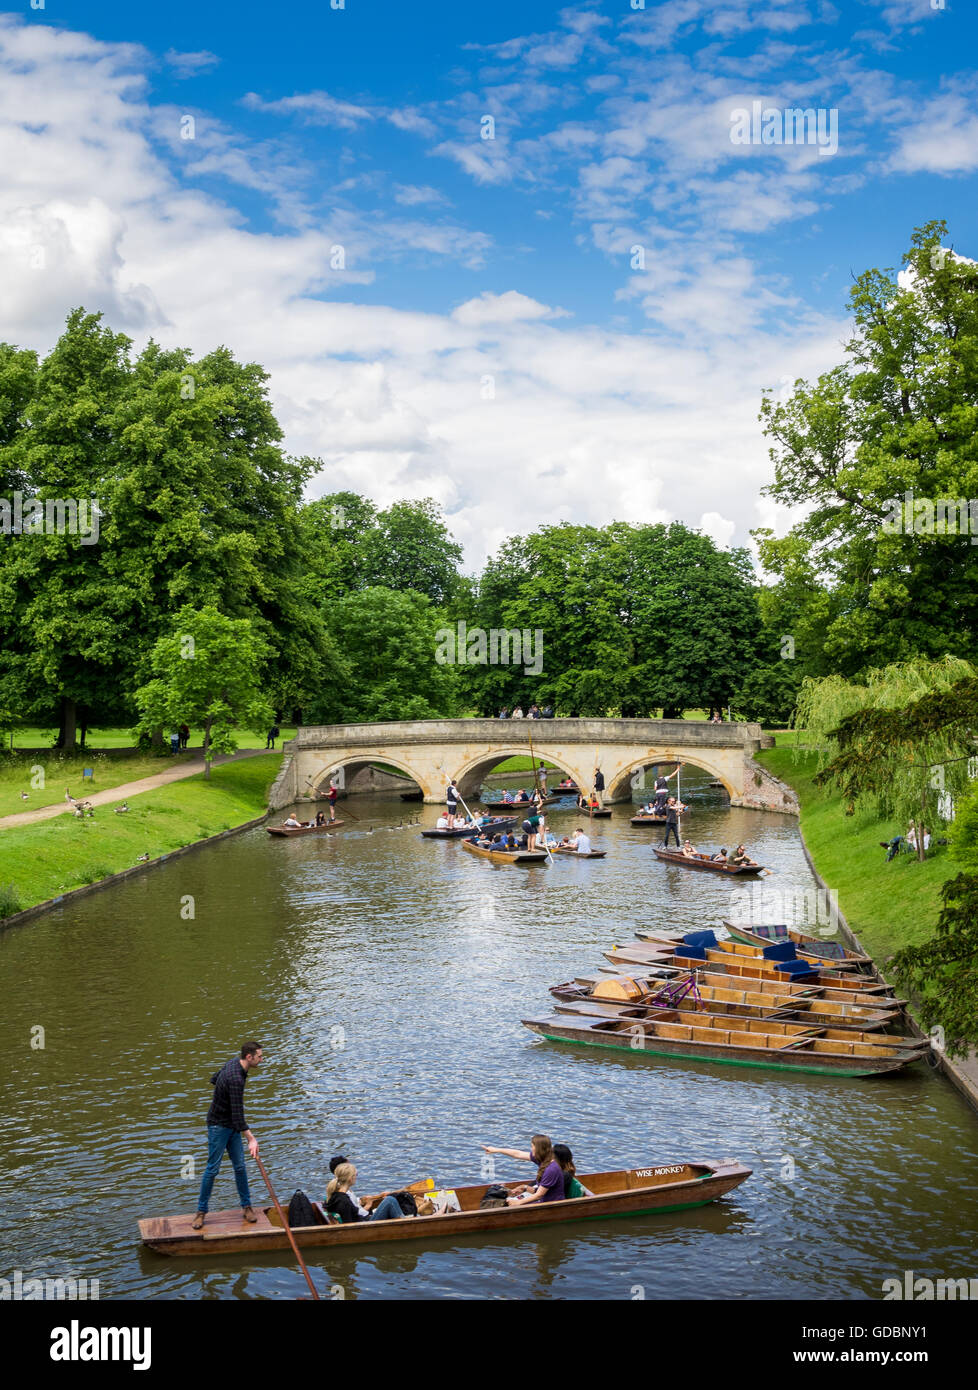 Punting on the River Cam, Cambridge, England, UK - Stock Image